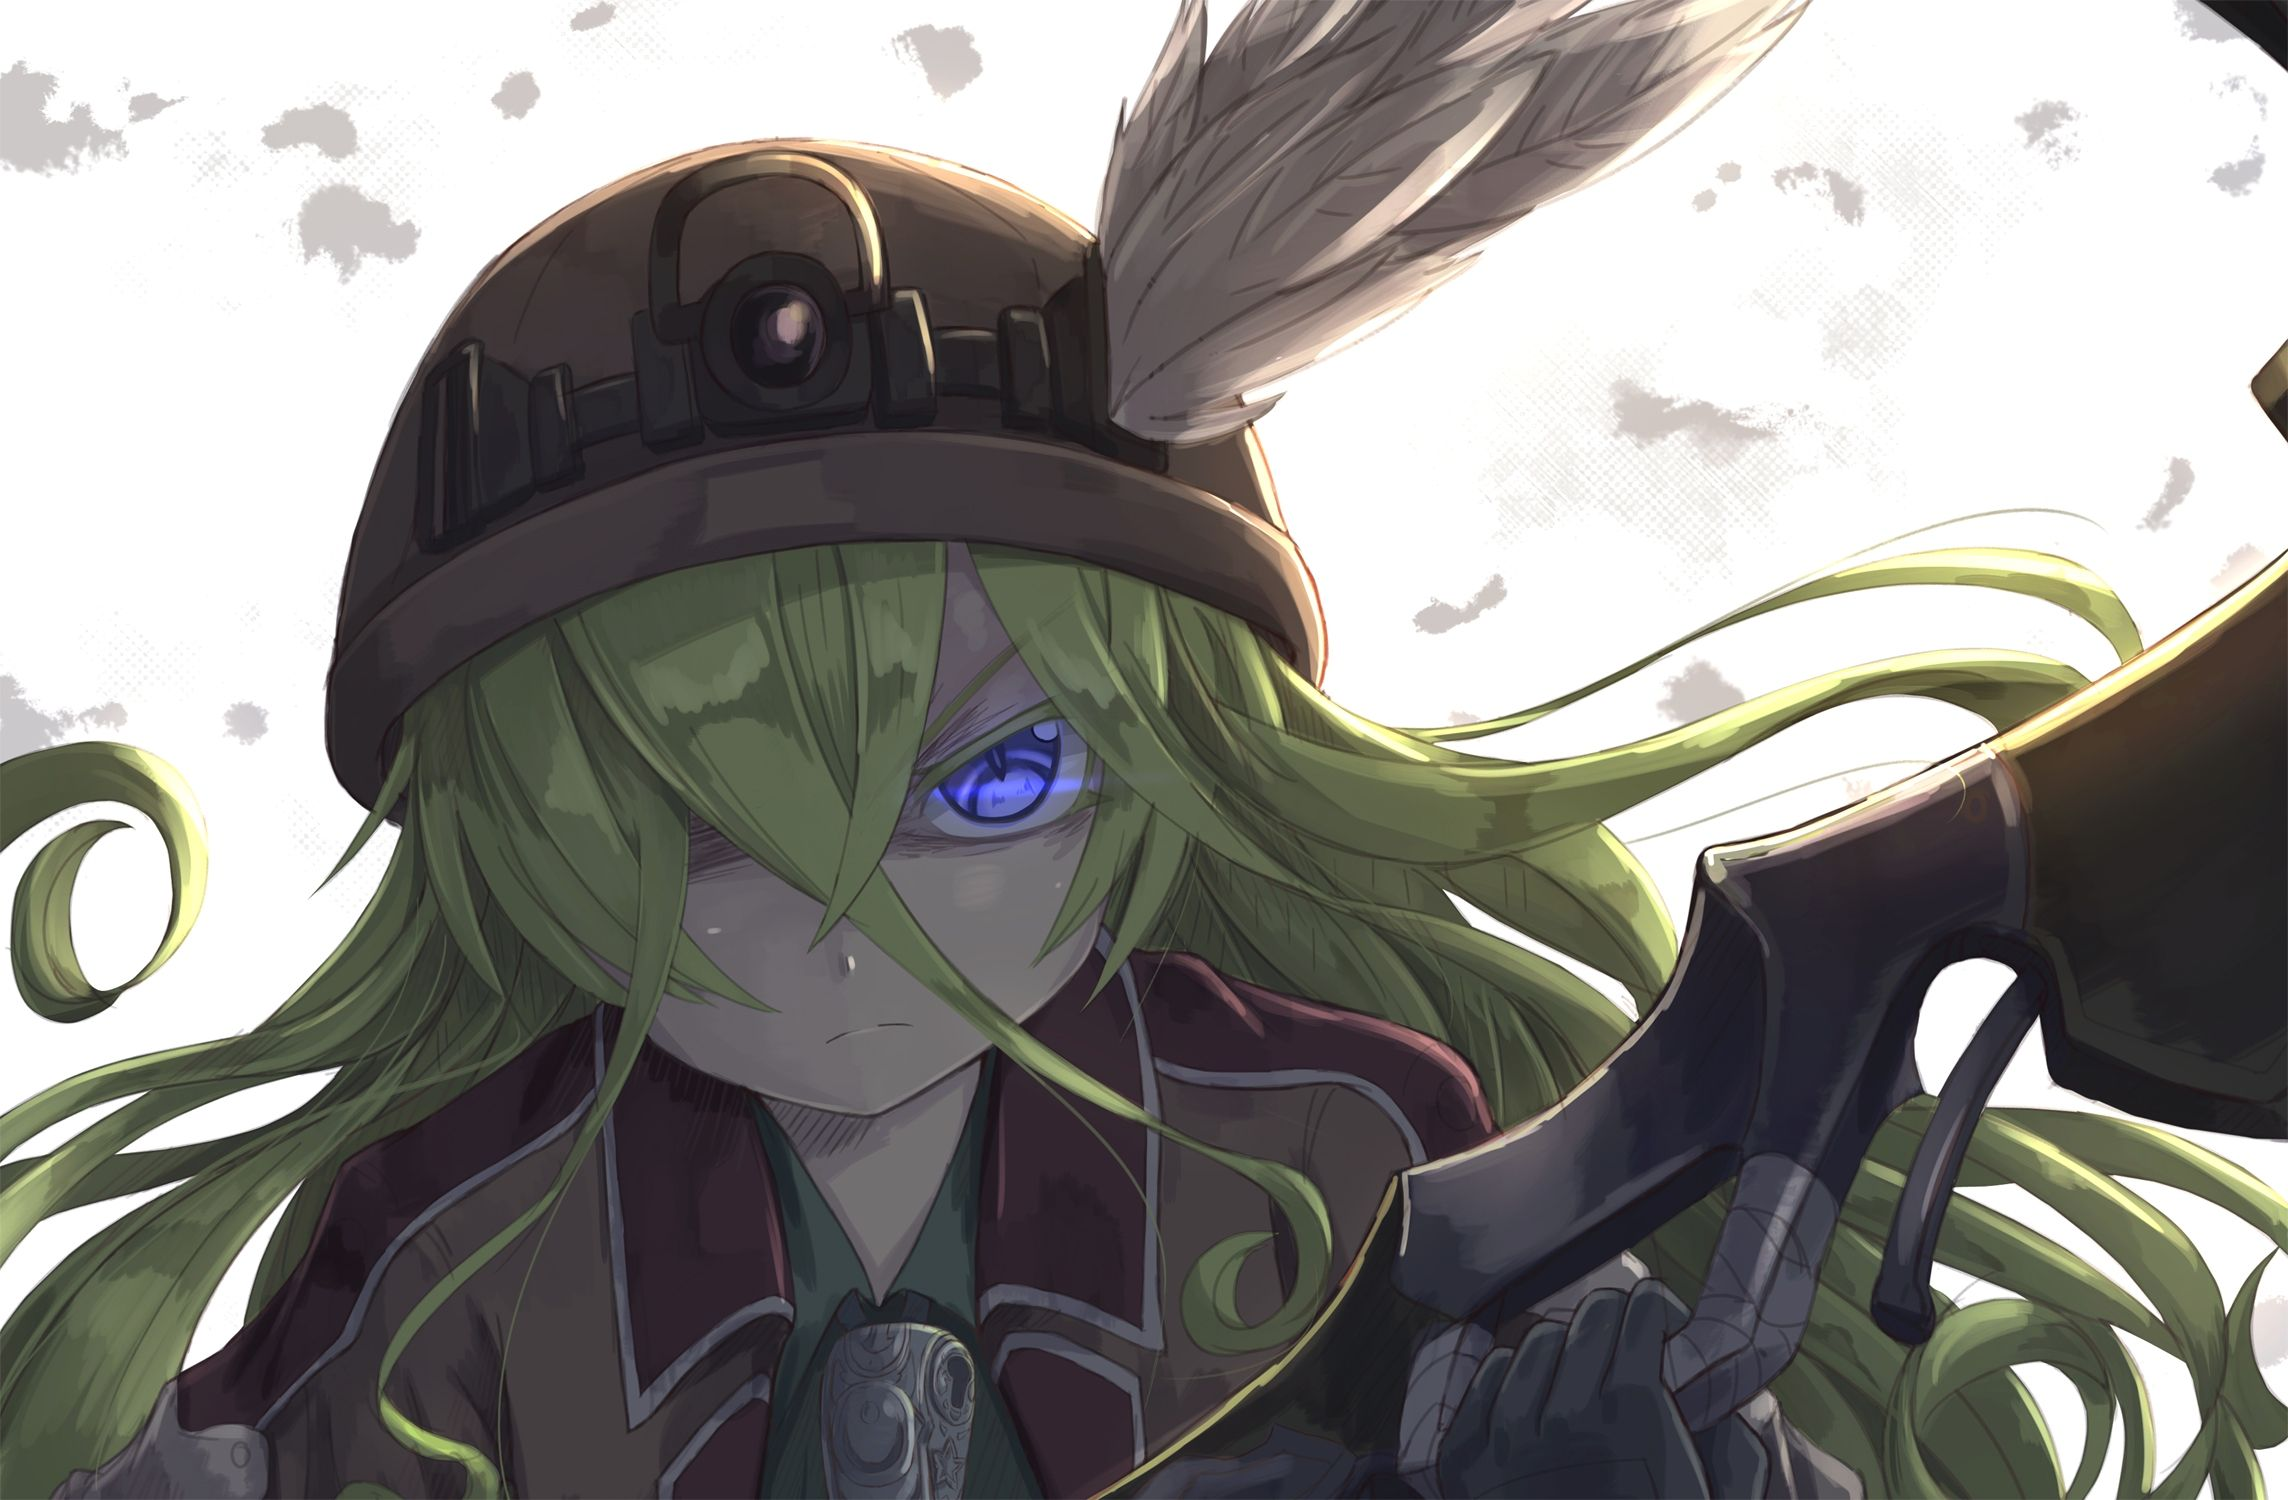 Made In Abyss Lyza Anime Hd Backgrounds Anime Images